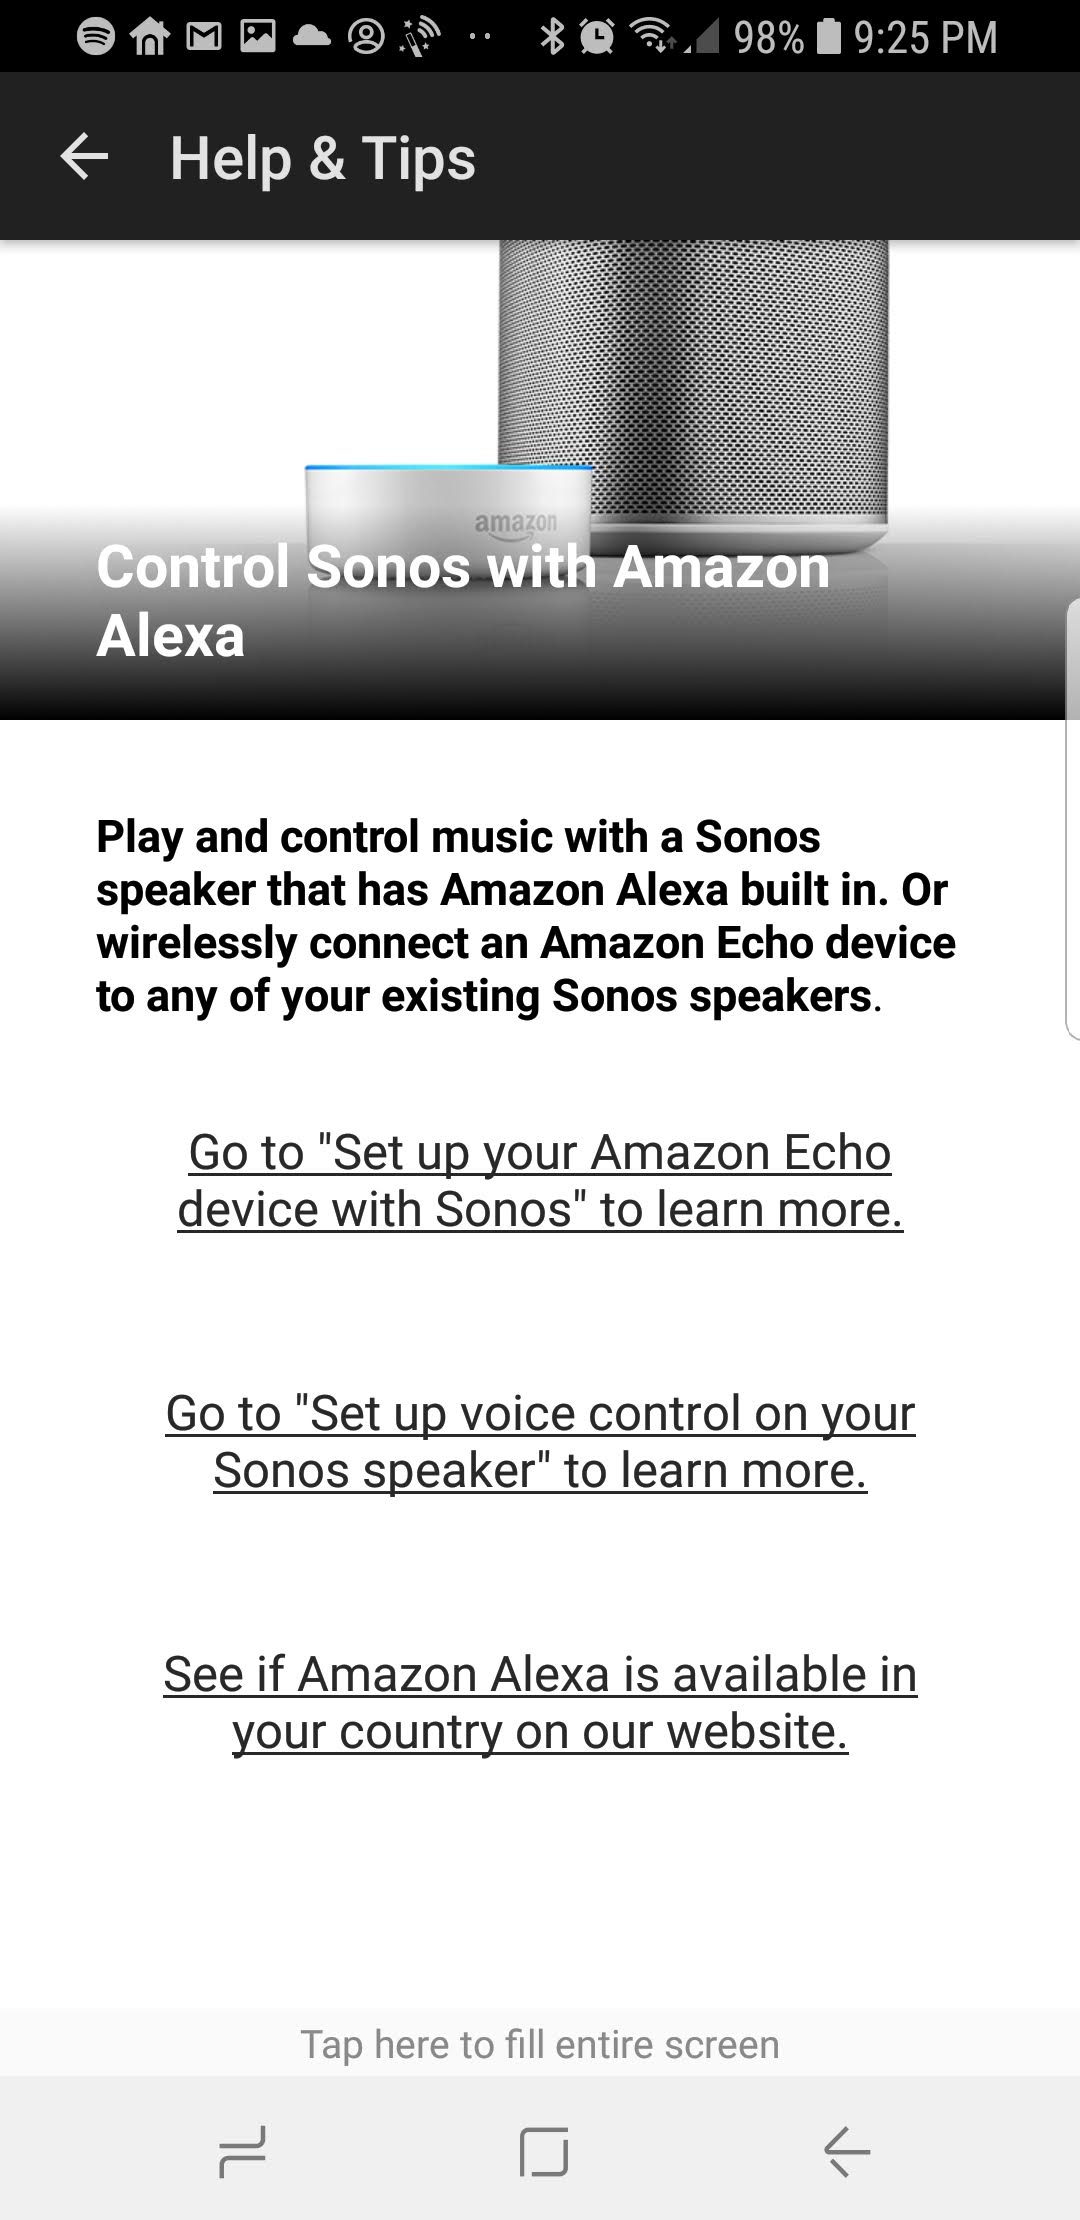 How to set up Sonos with Alexa